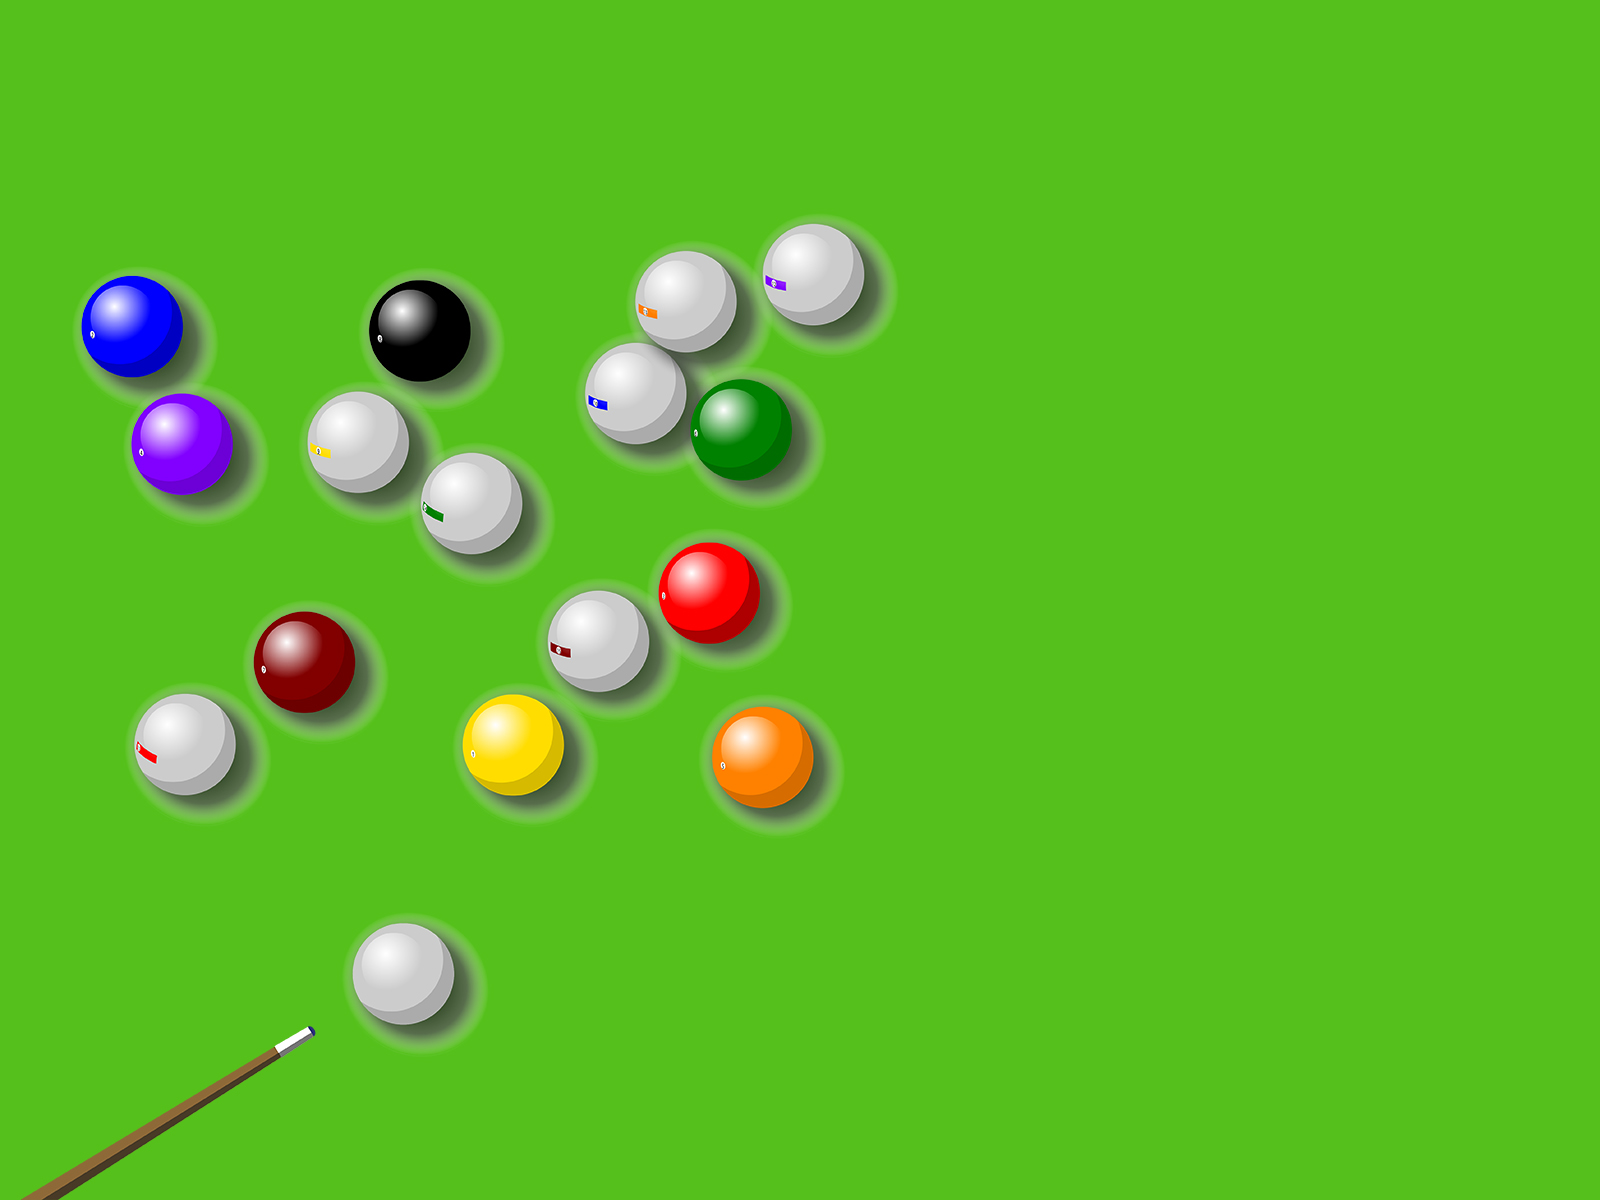 Pool billard backgrounds games green templates free for Tv game show powerpoint templates